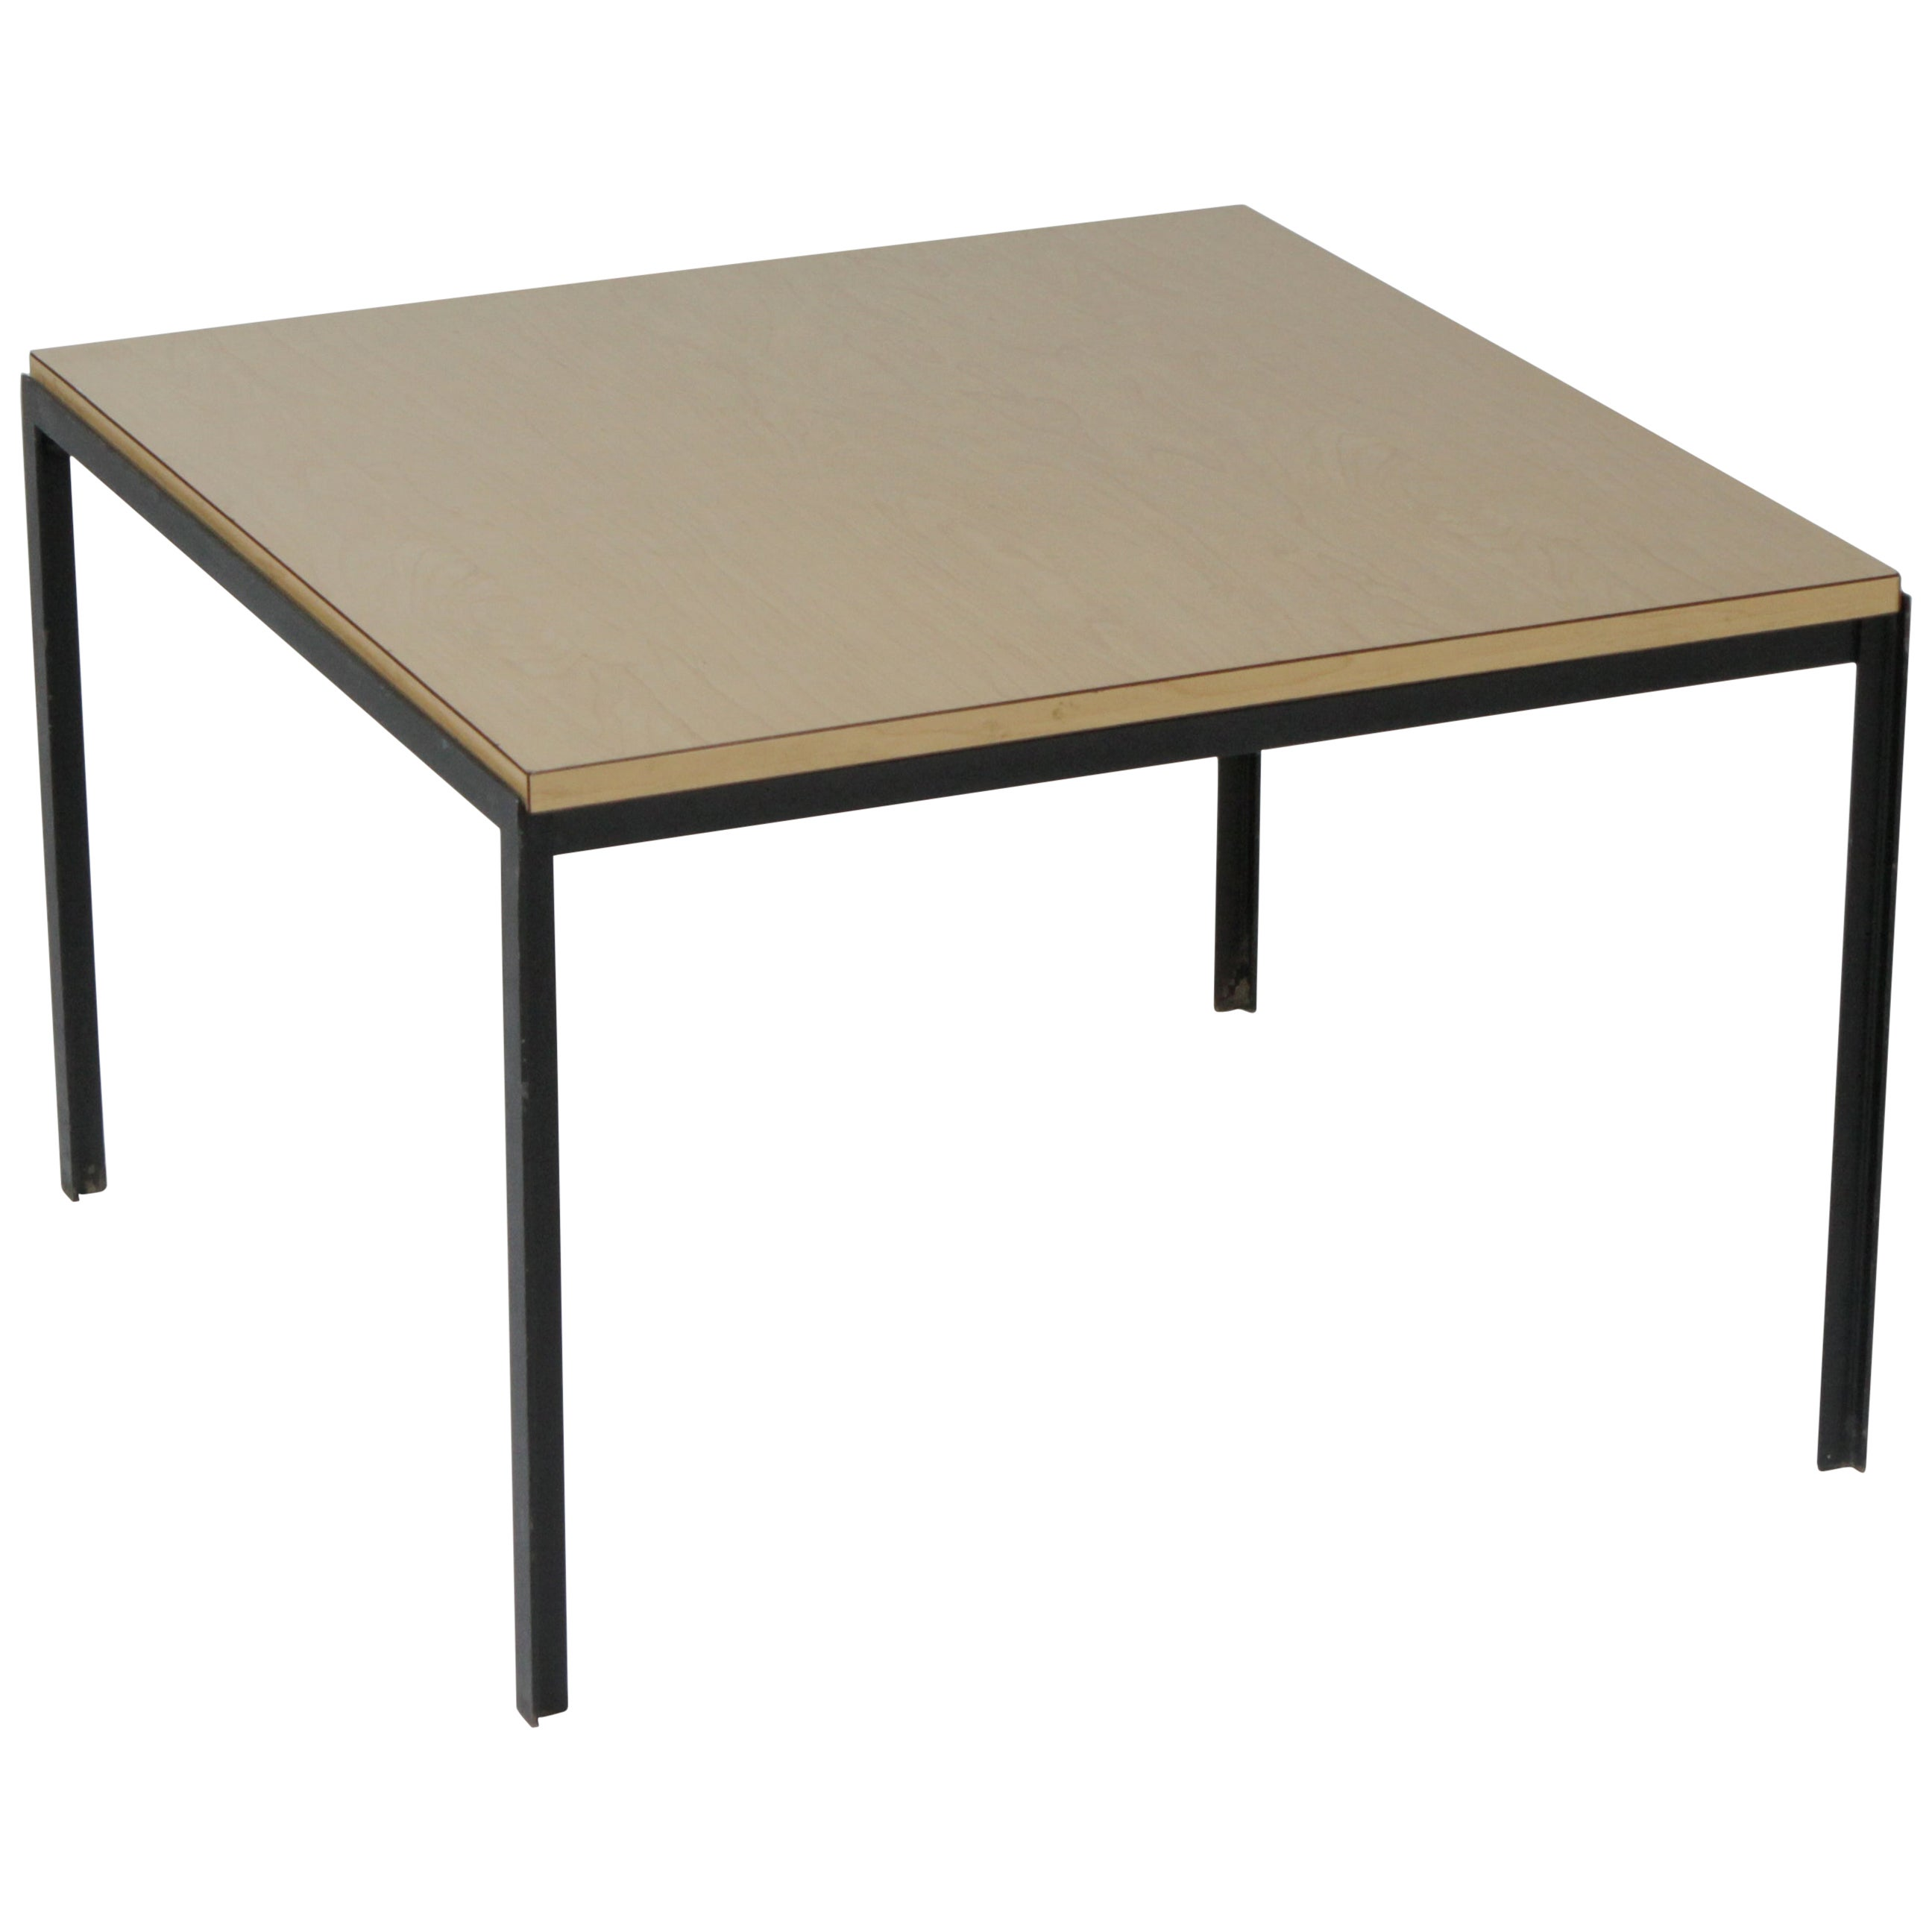 1950s Mid-Century Modern Florence Knoll T Angle Table with a Birch Laminate Top